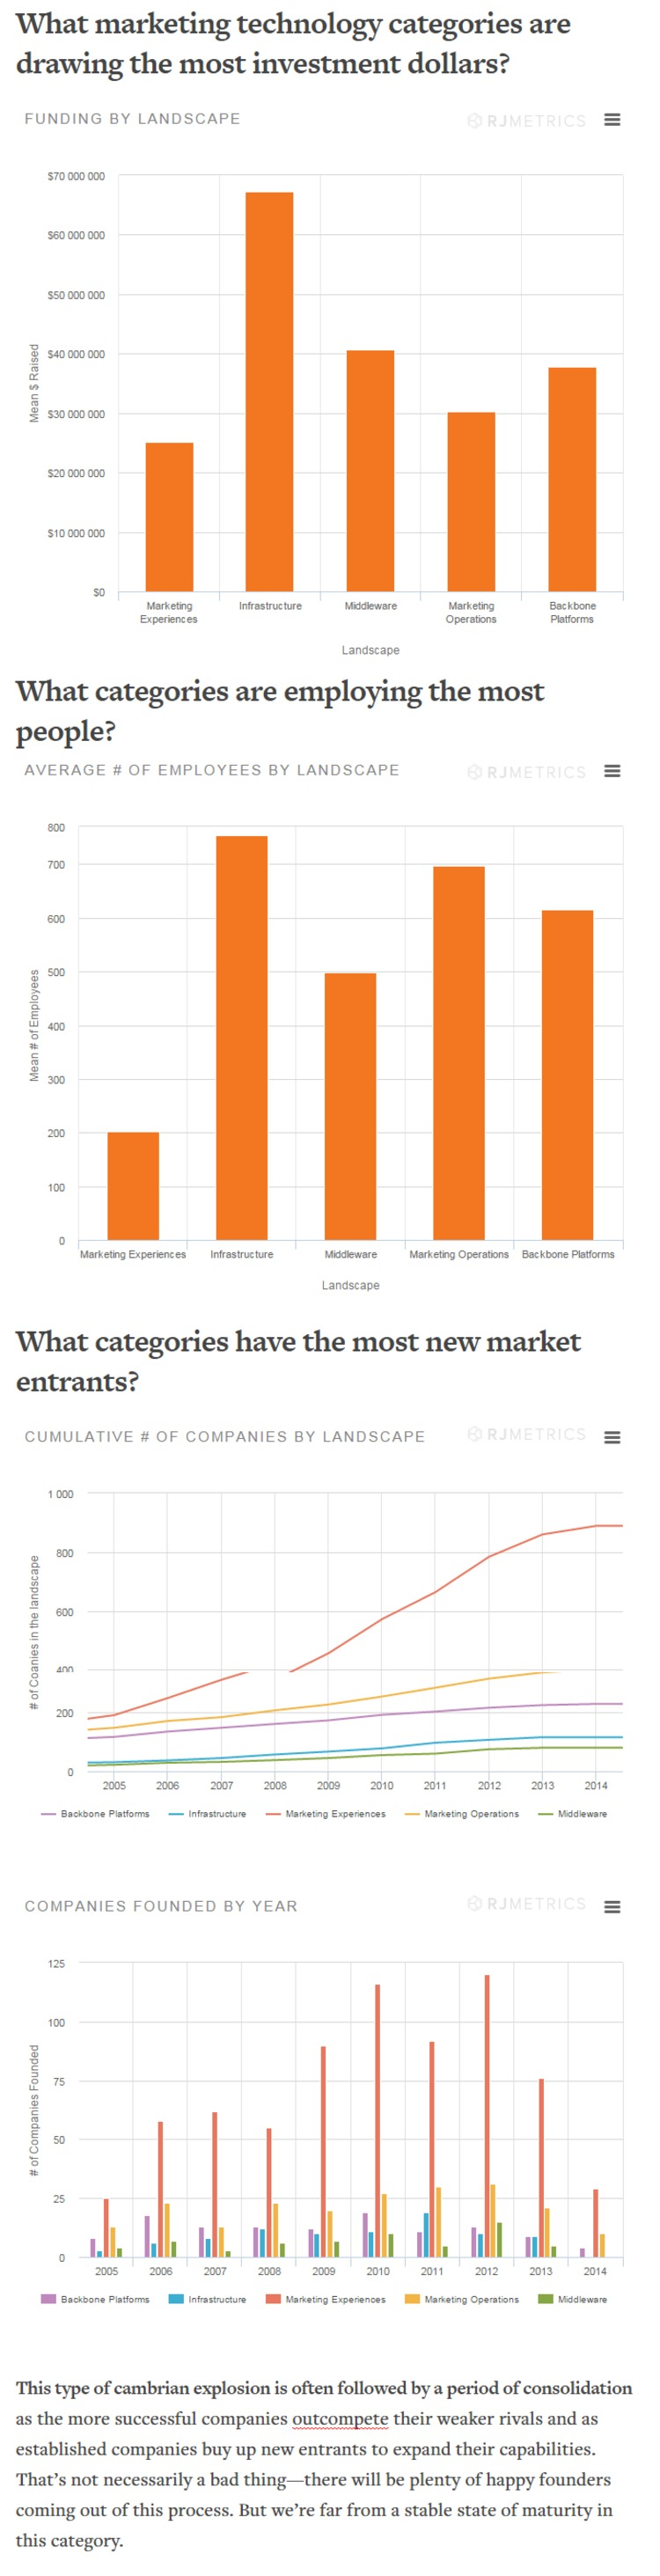 Why Fastest-Growing Category of Marketing Software is Also the Riskiest - RJMetrics | The Marketing Technology Alert | Scoop.it